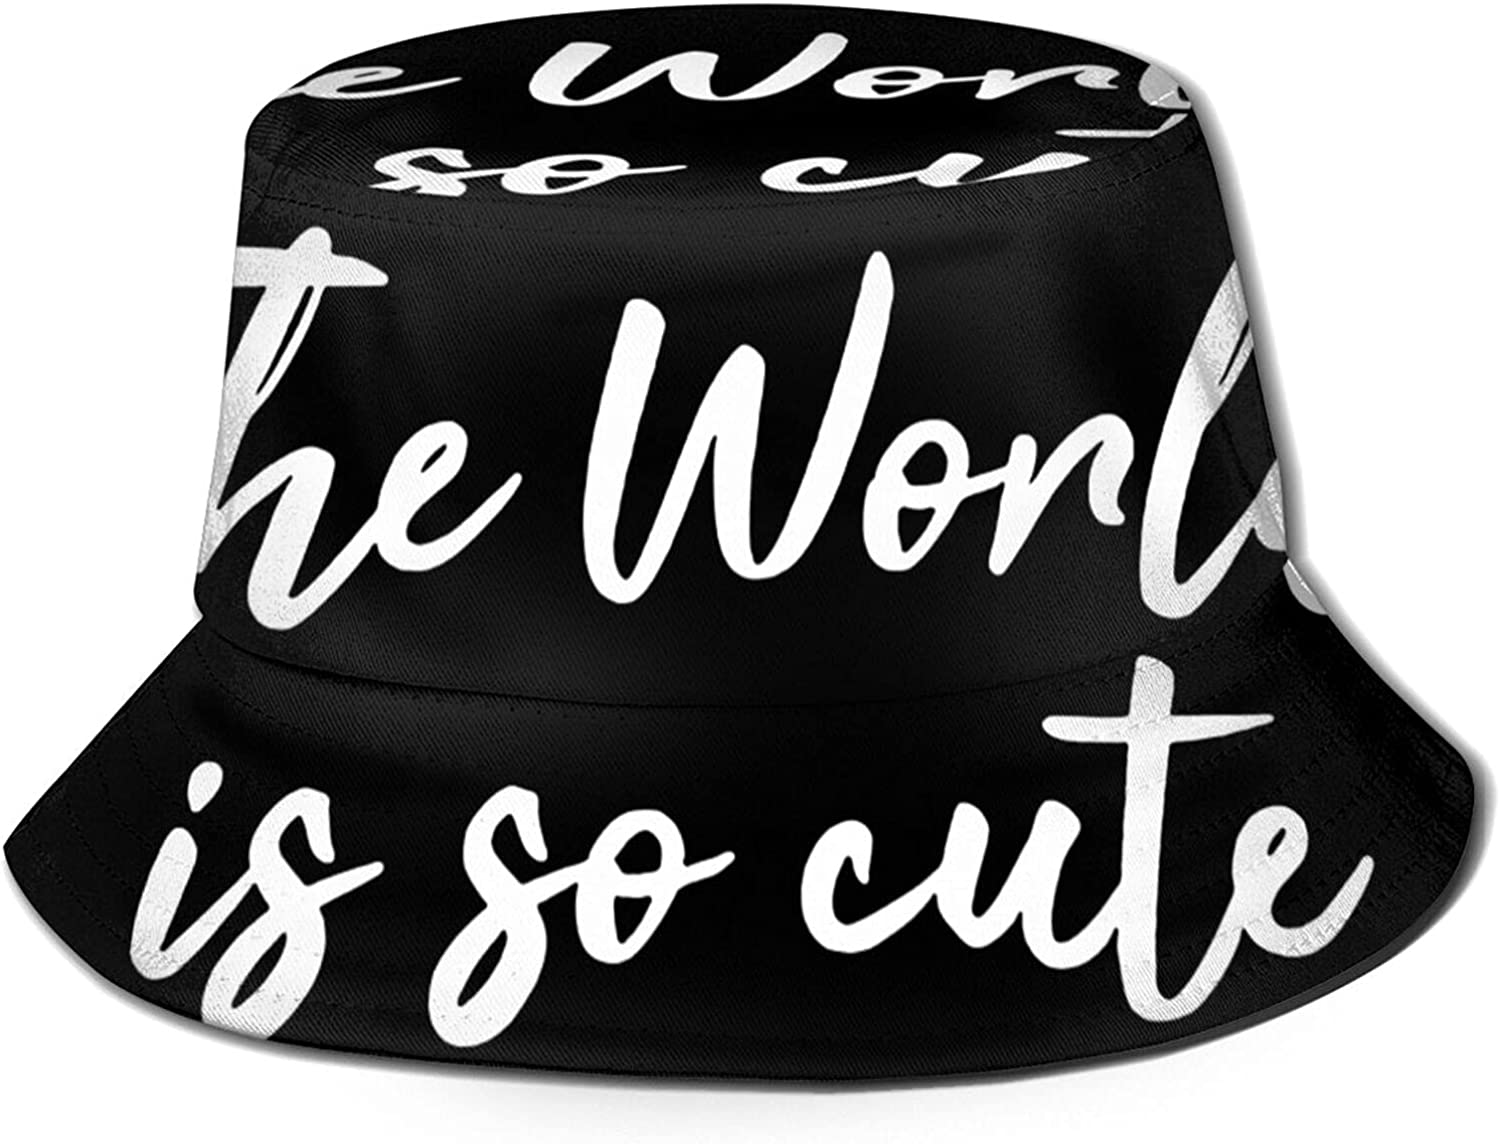 The World is So Cute Bucket Summer Sun Hat Max Al sold out. 85% OFF Packable F Unisex